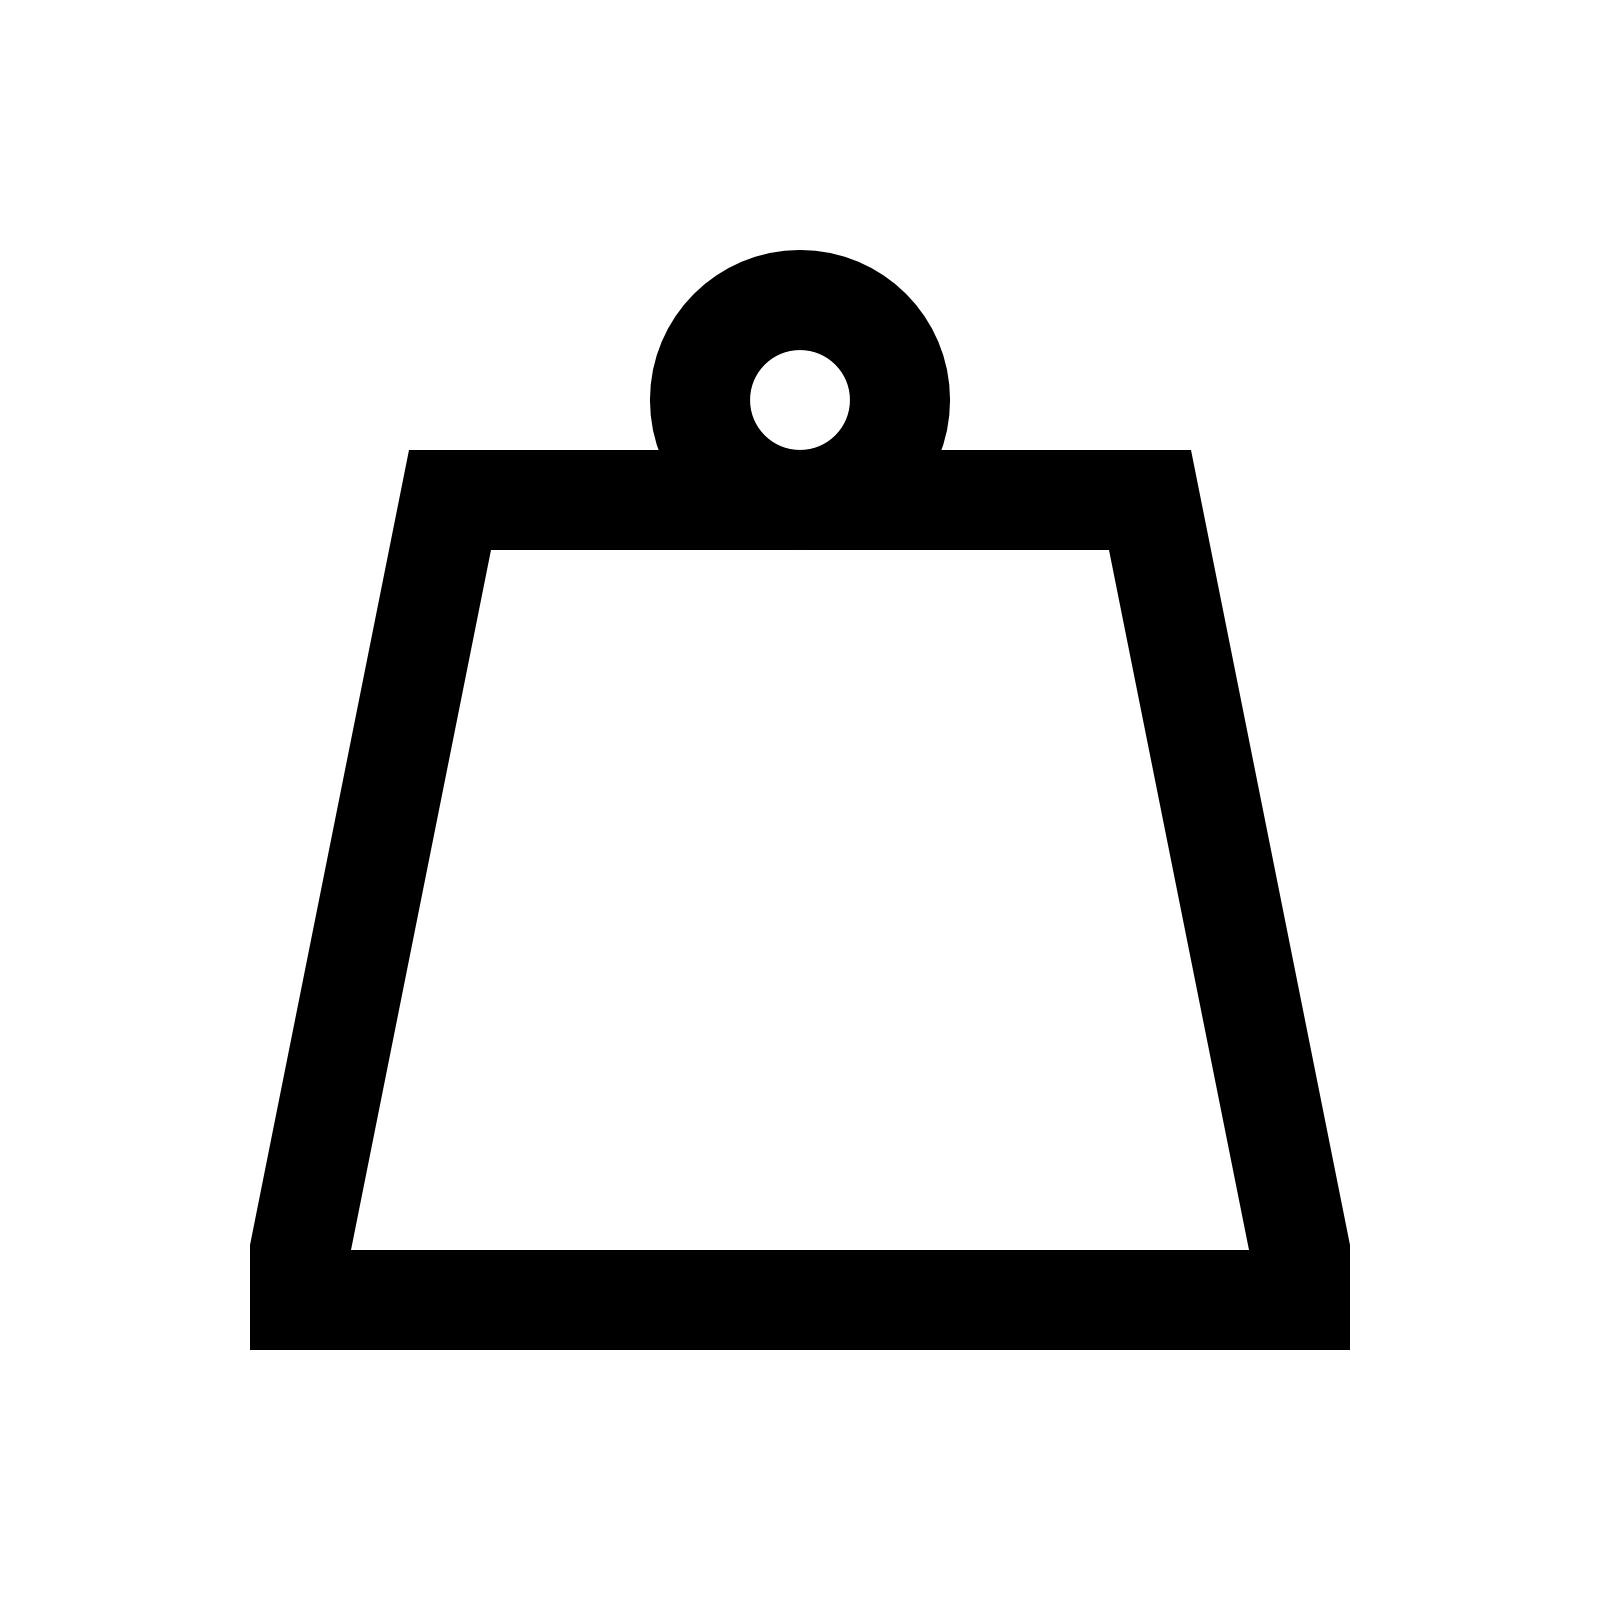 Weight clipart kilogram. Computer icons measuring scales